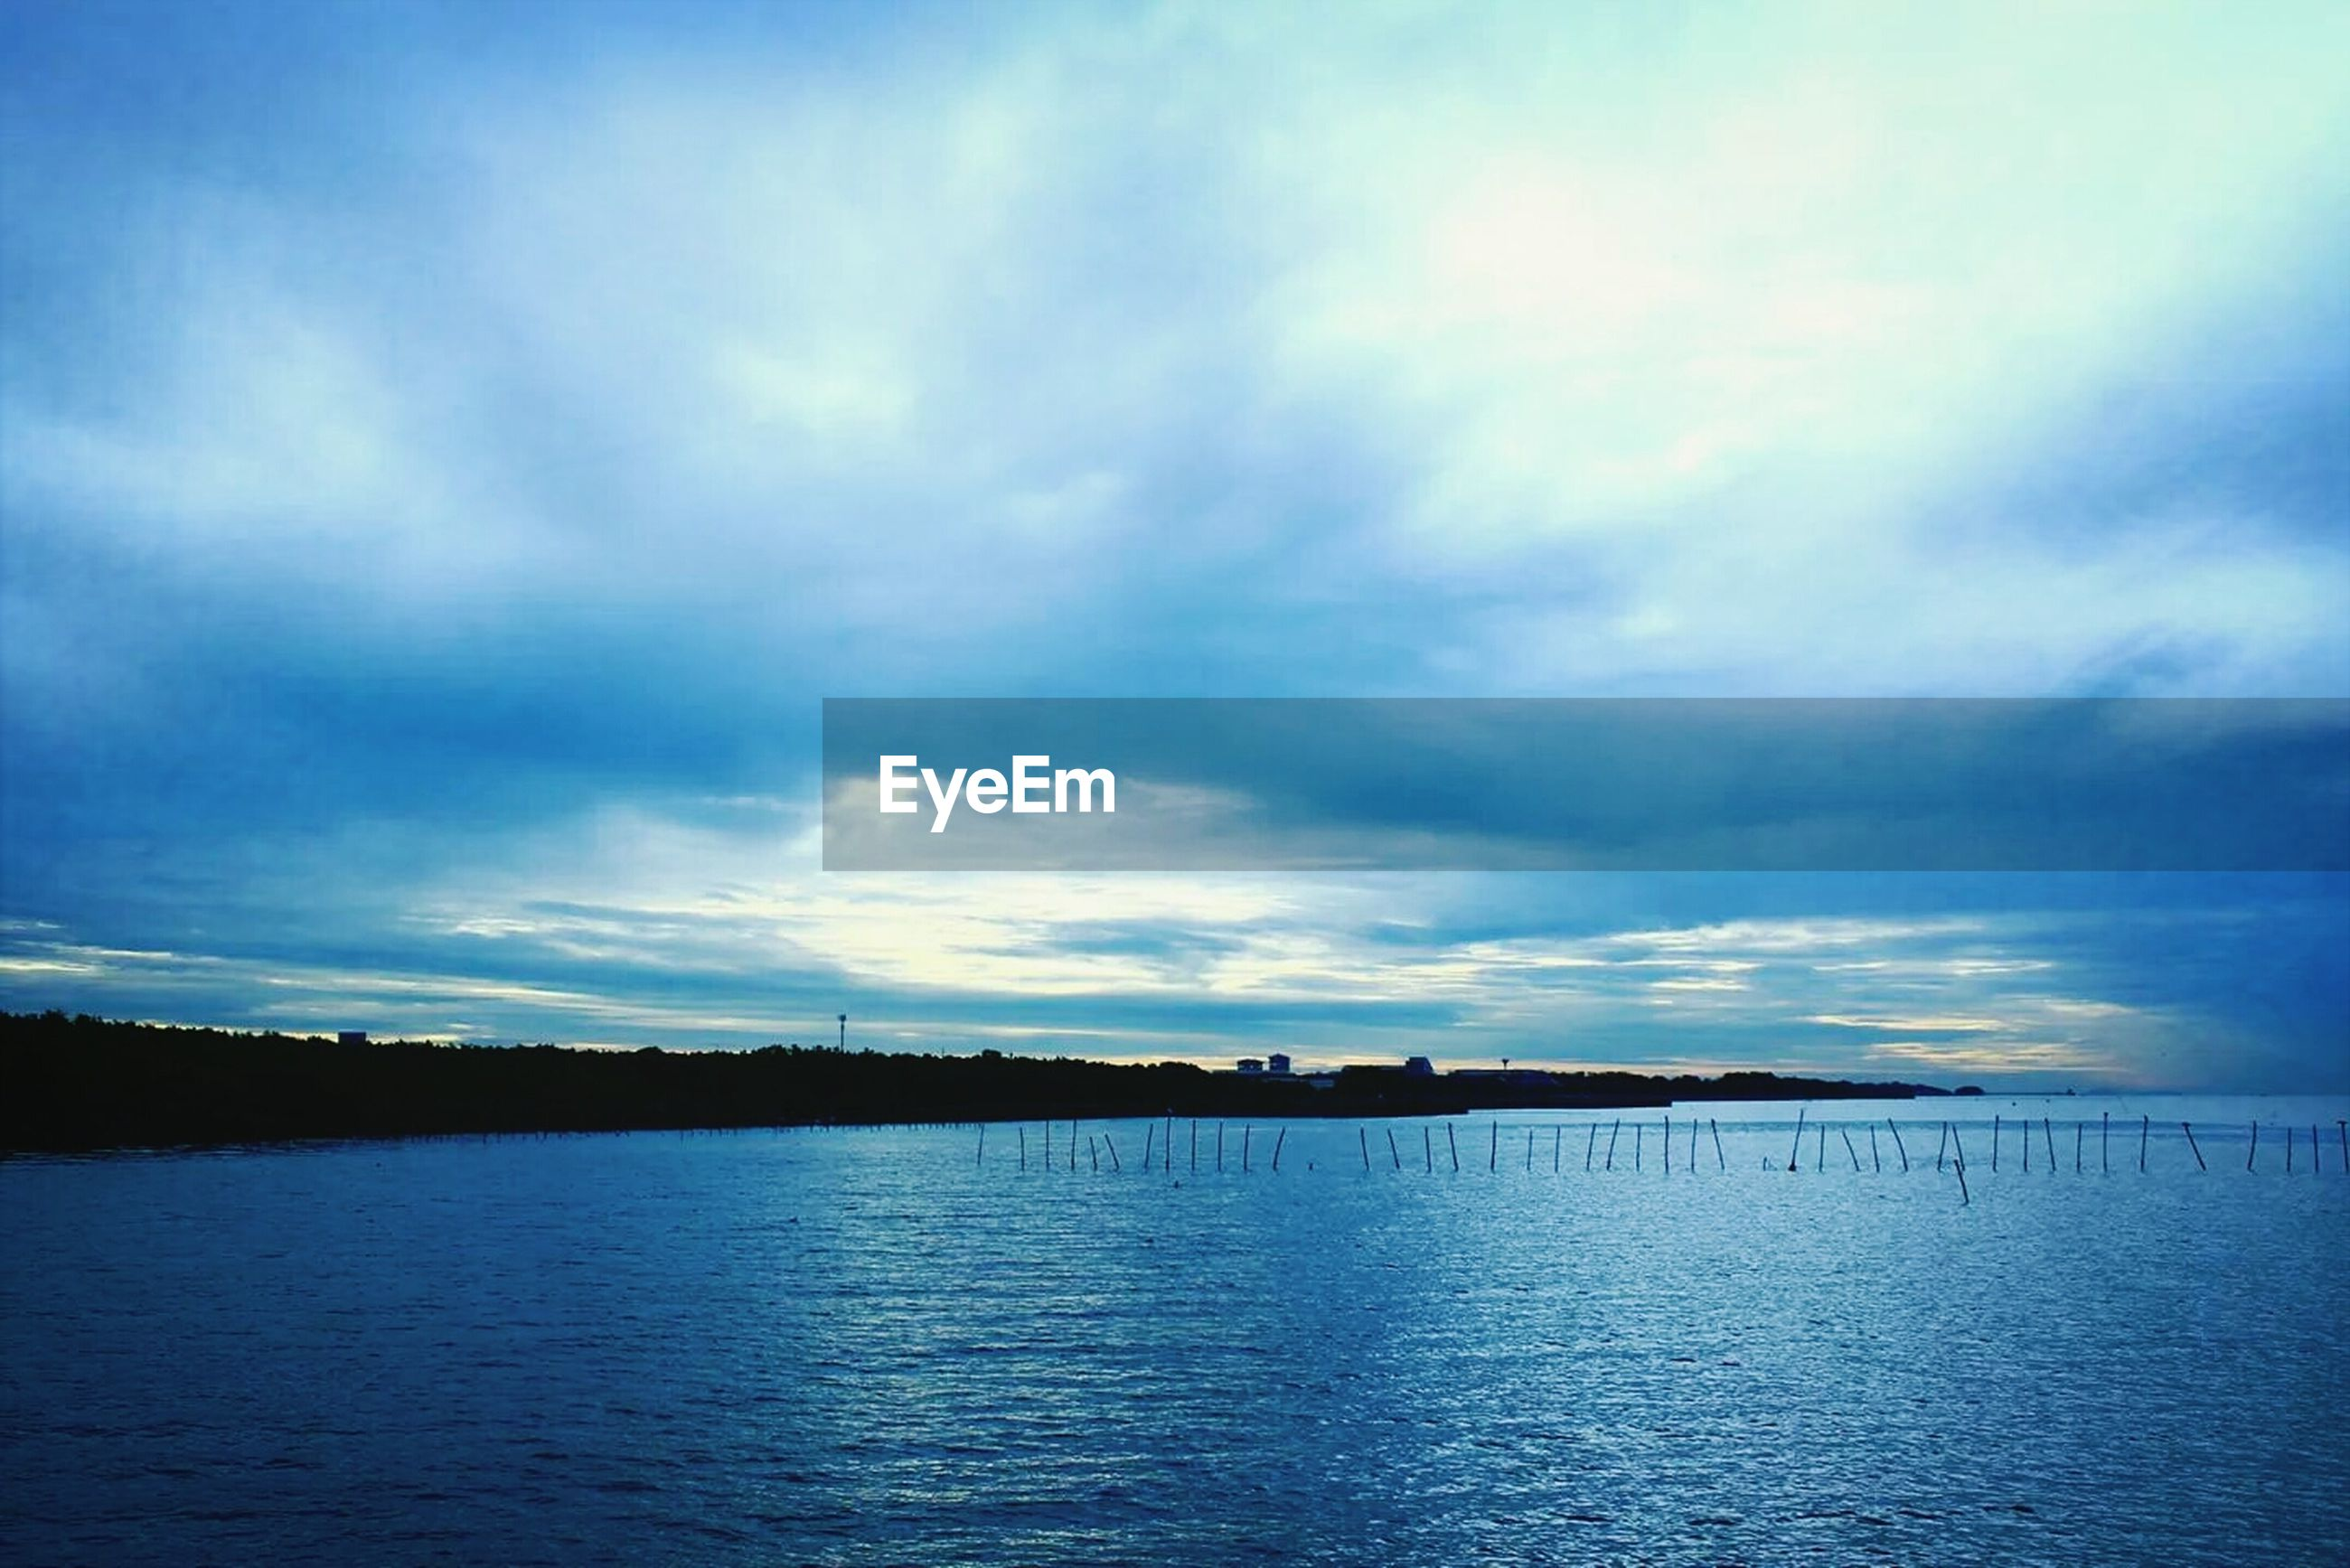 water, sky, tranquil scene, tranquility, waterfront, scenics, cloud - sky, beauty in nature, sea, nature, cloud, cloudy, idyllic, lake, reflection, blue, dusk, calm, silhouette, outdoors